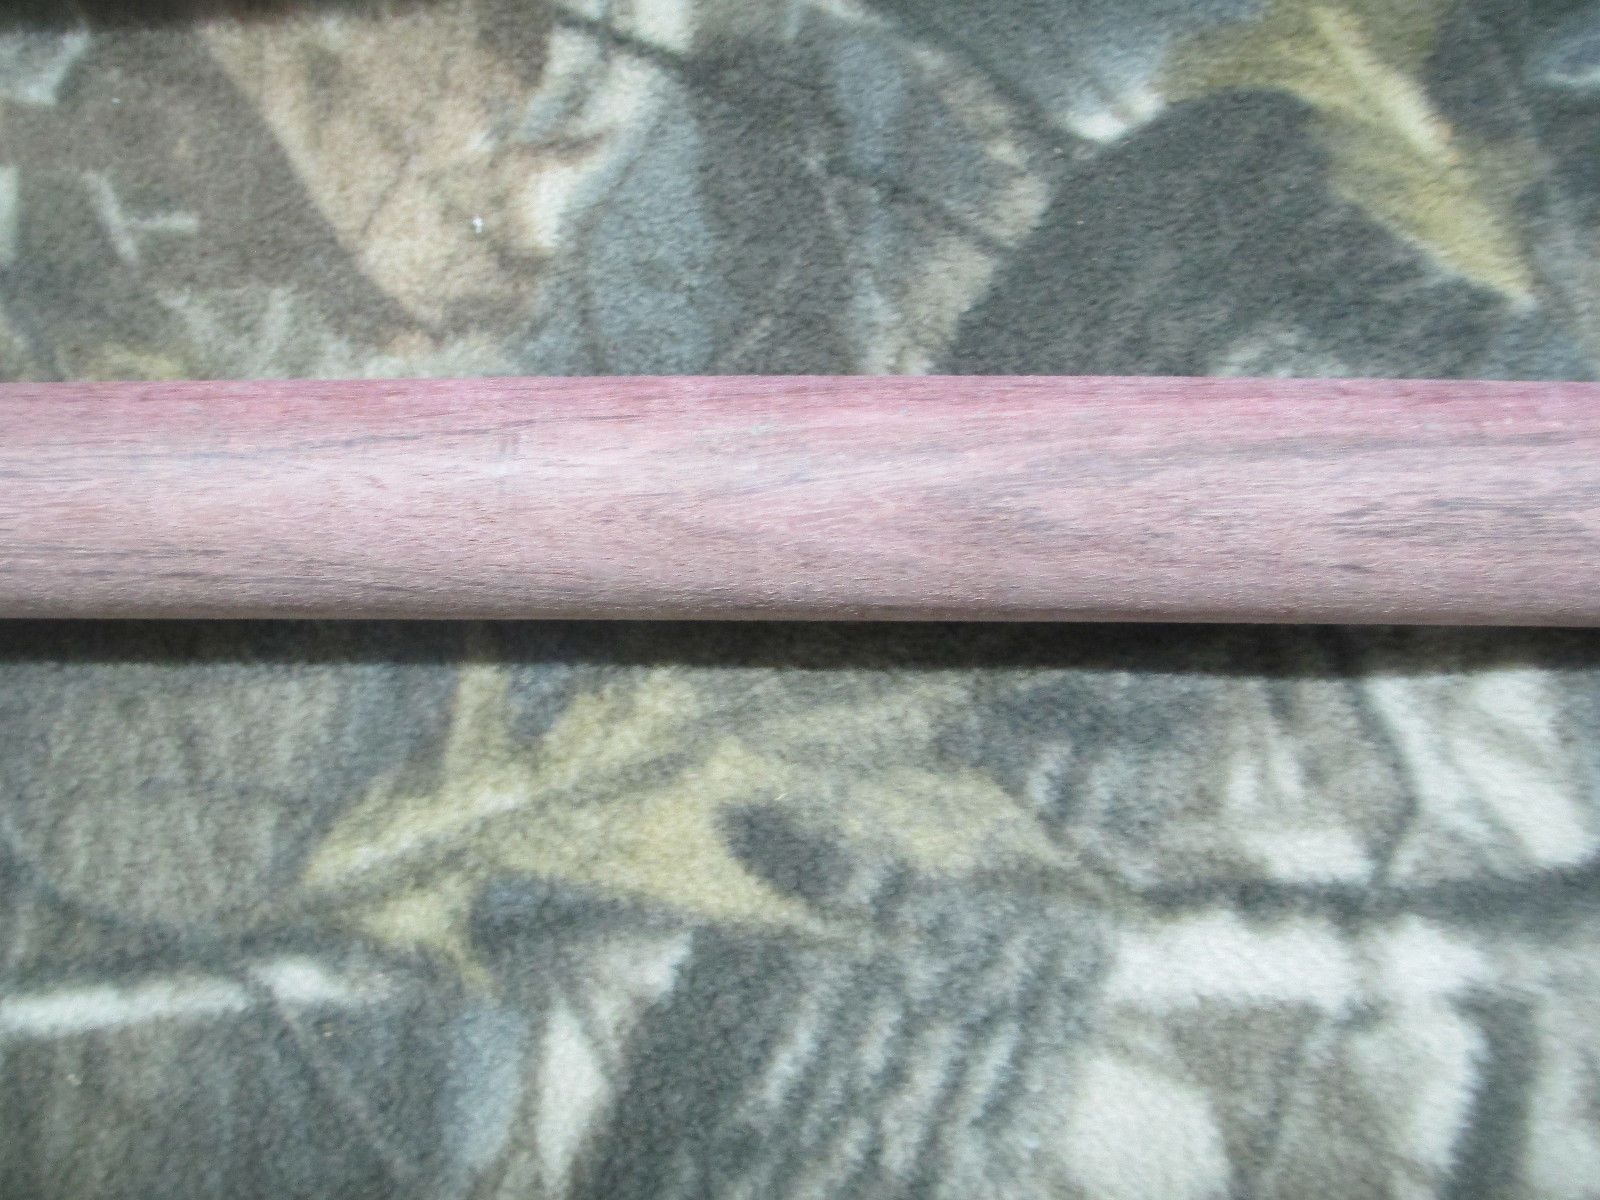 Dowels 183158 Purple Heart Wood 1 1 2 X 40 3 4 Dowel Turning Materials Duck Goose Stoppr Buy It Now Only 39 99 On Ebay Purple Heart Wood Game Calls Purple